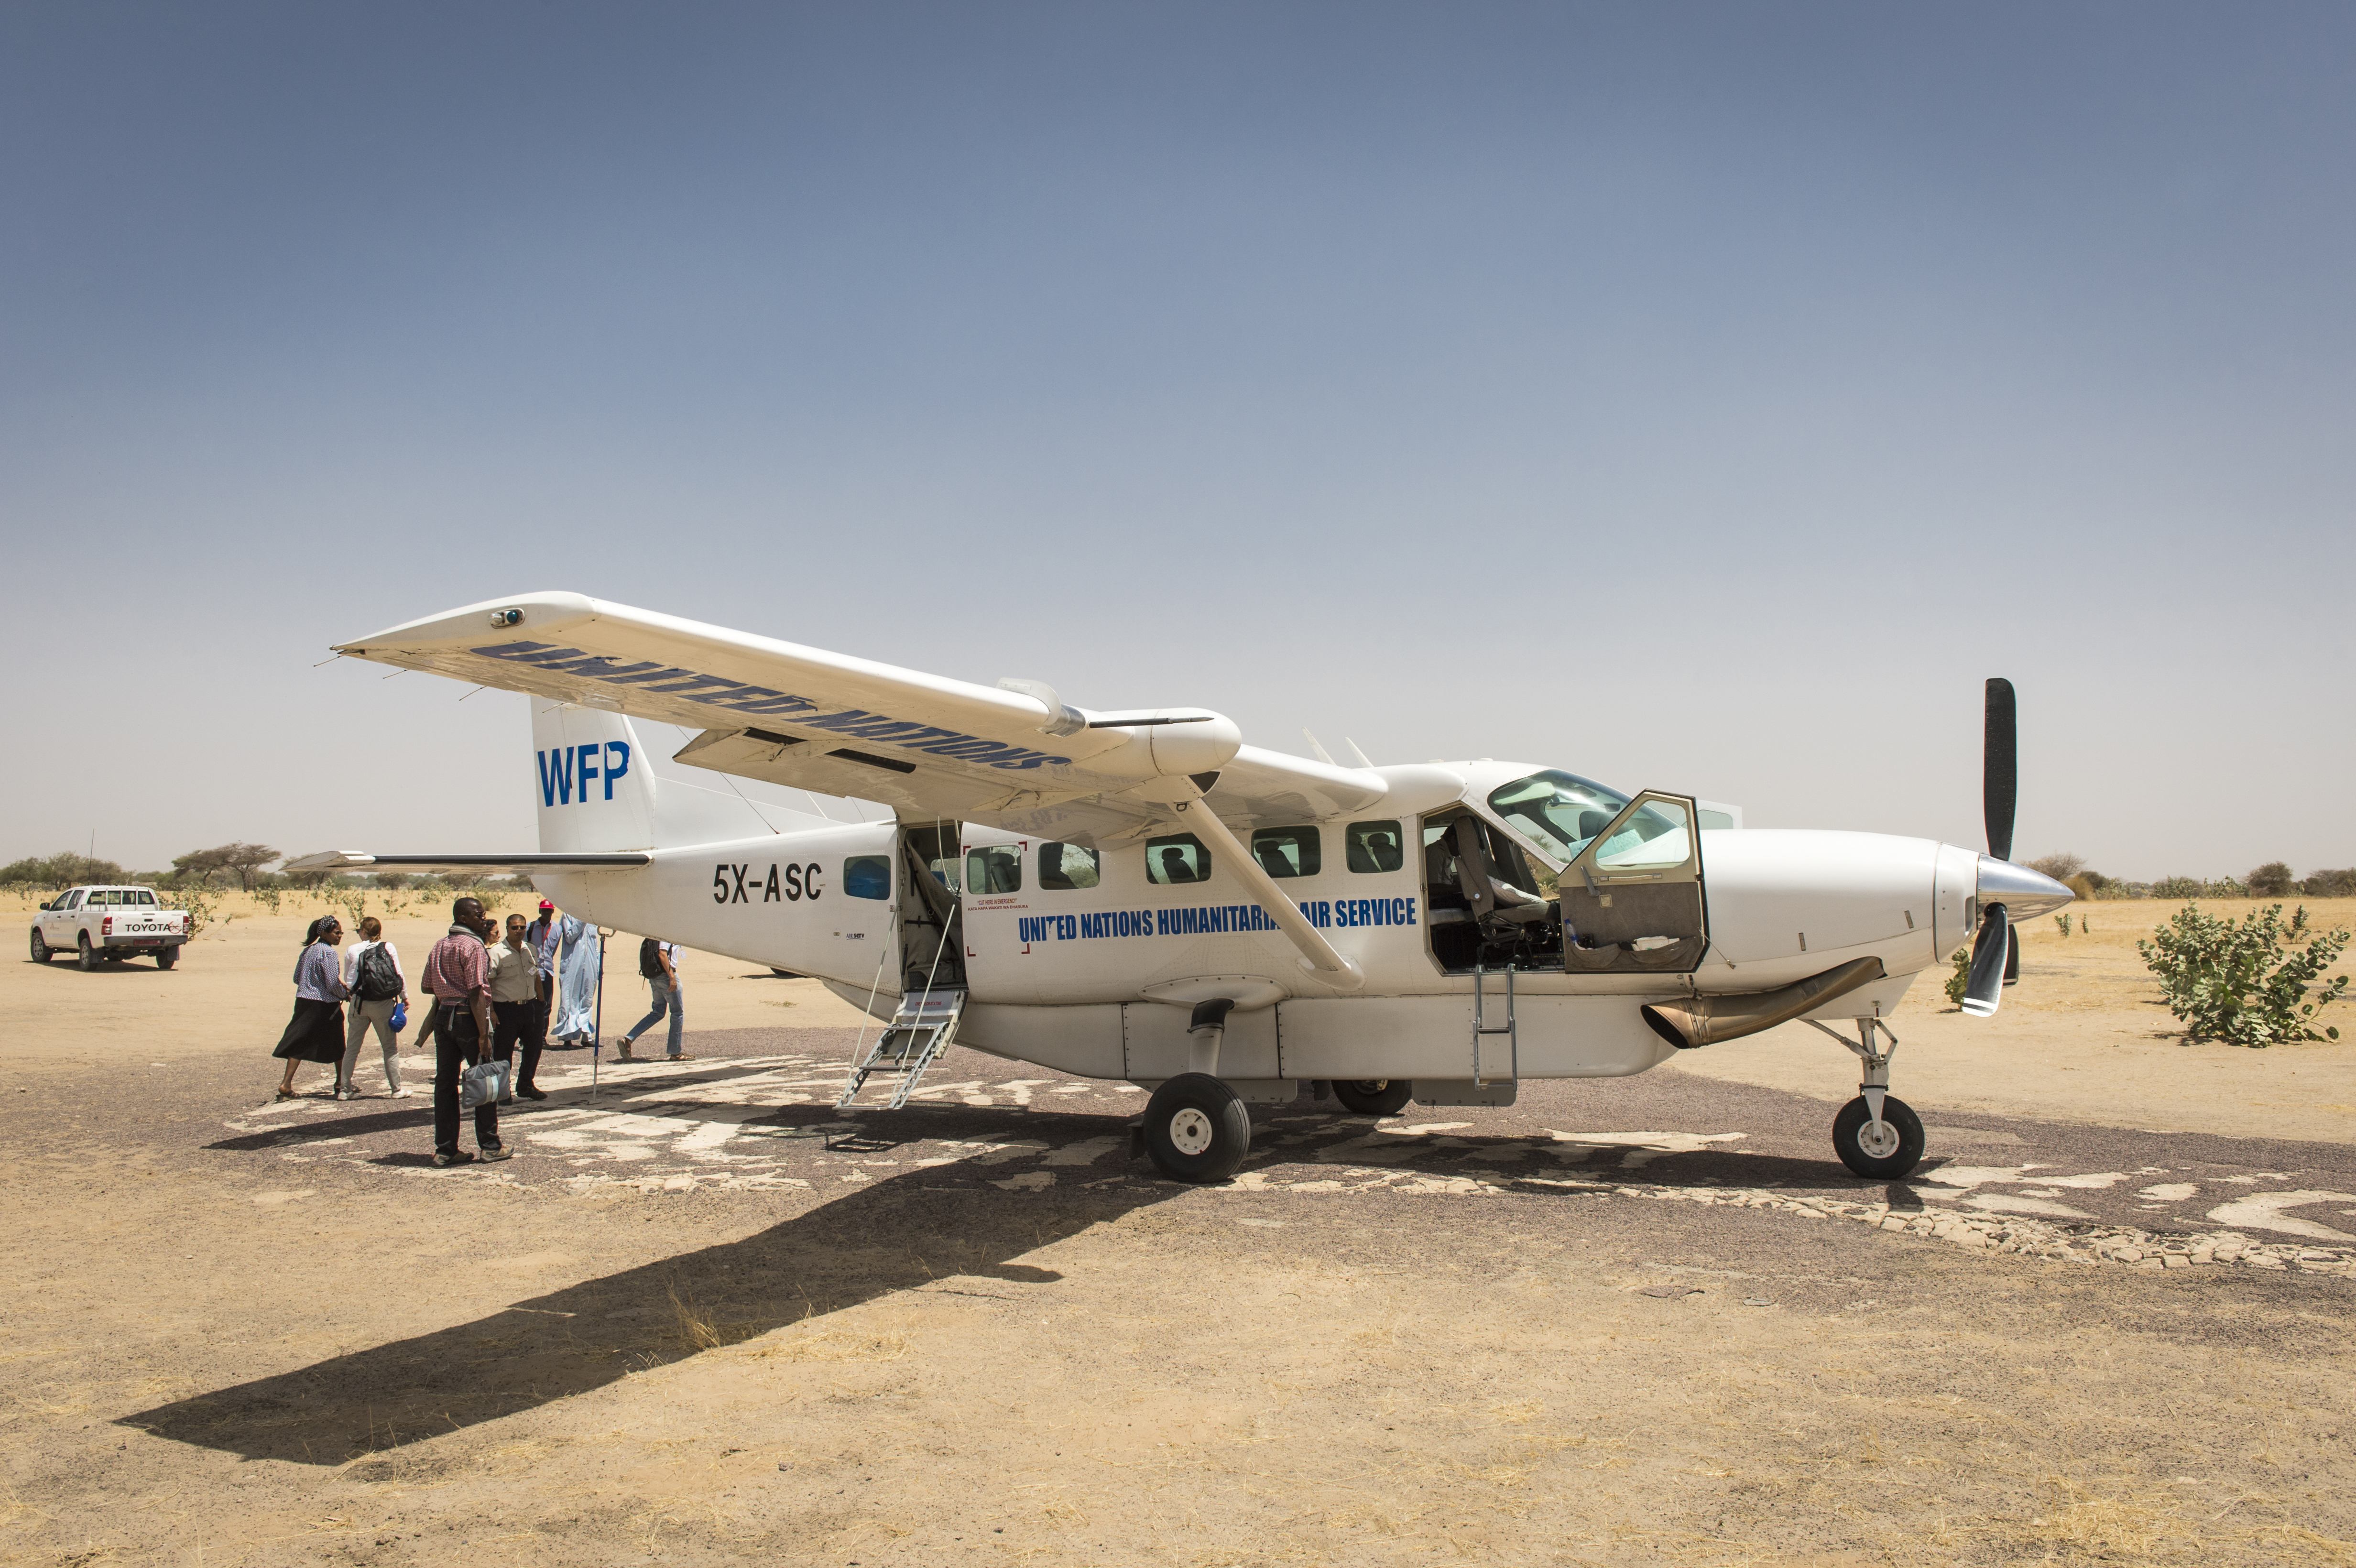 Wfp Works With Un Partners To Expand Innovative Booking Hub World How A Propeller Aviation And Engineering